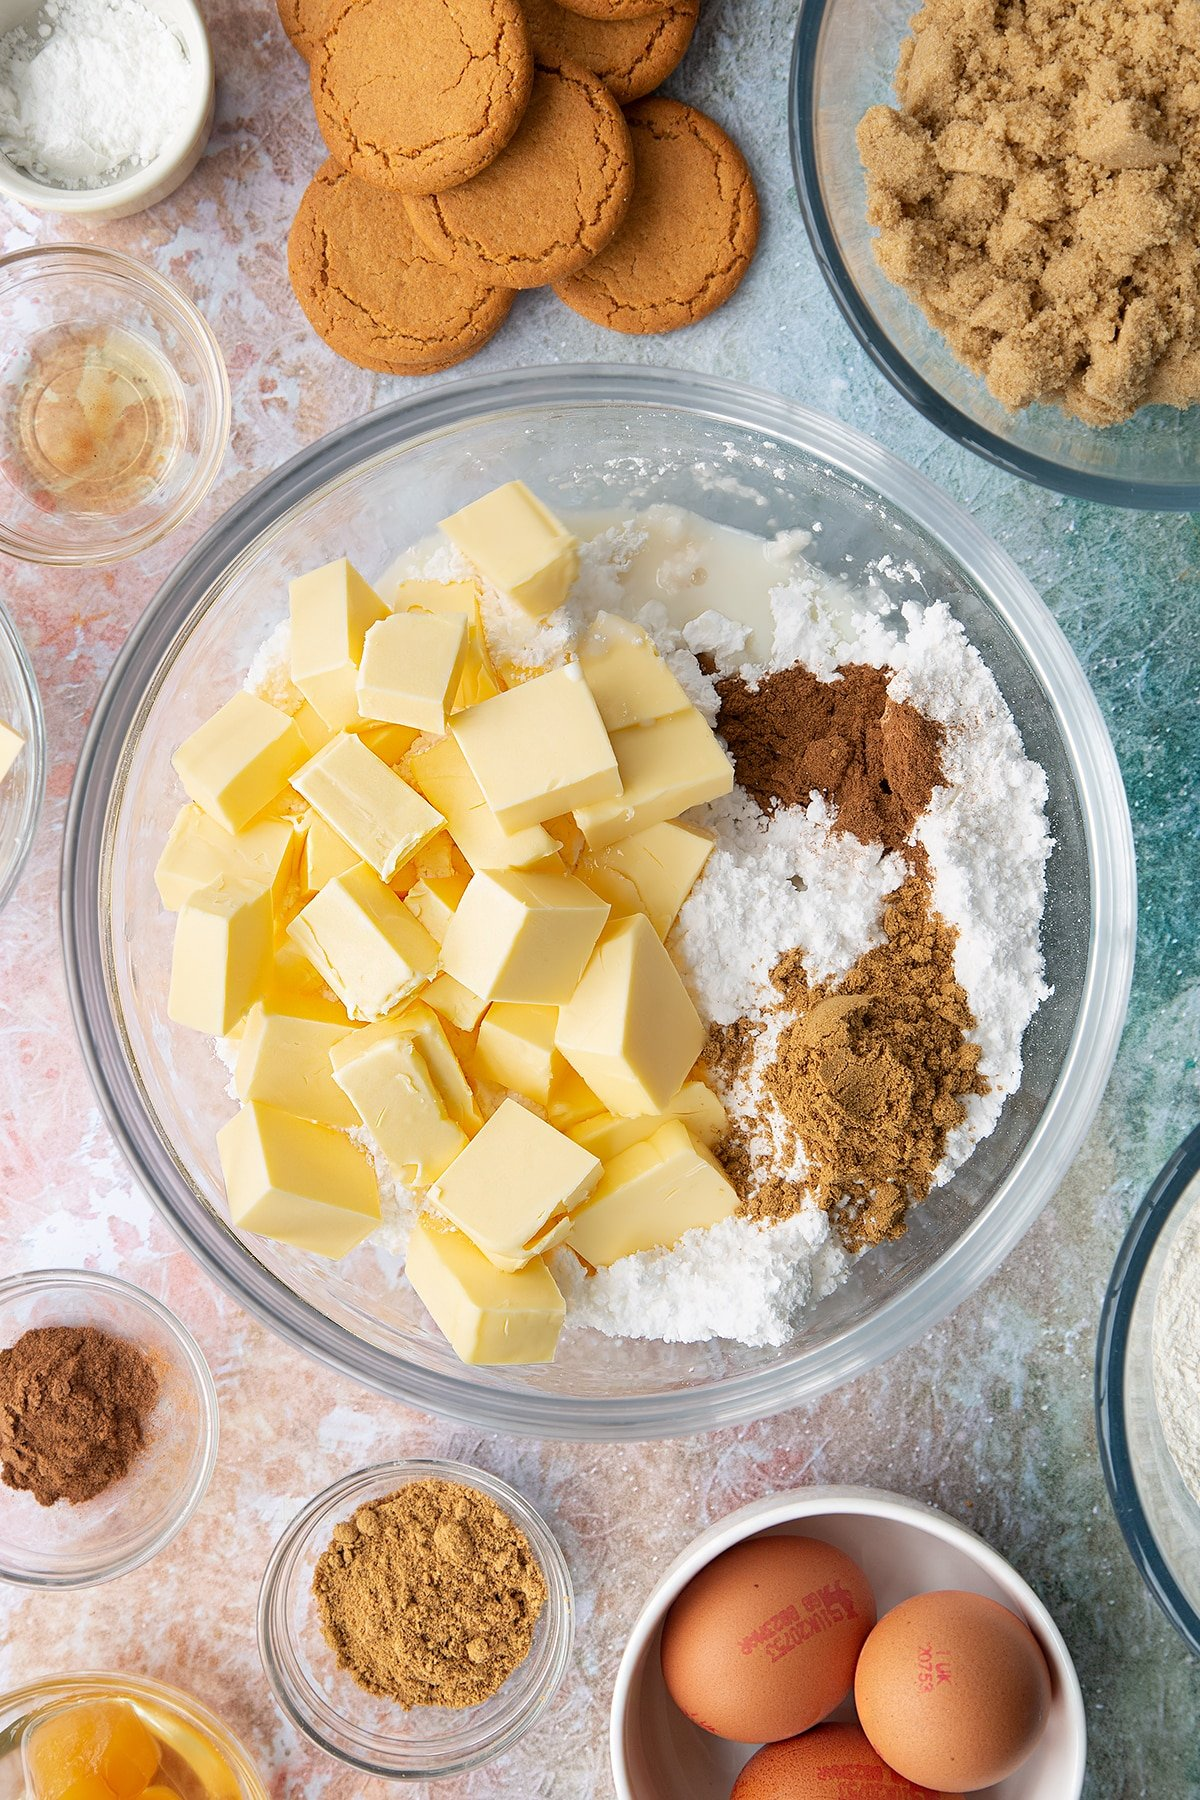 Icing sugar, butter, cinnamon, ginger, vanilla and milk in a large bowl. Ingredients to make ginger cupcakes surround the bowl.